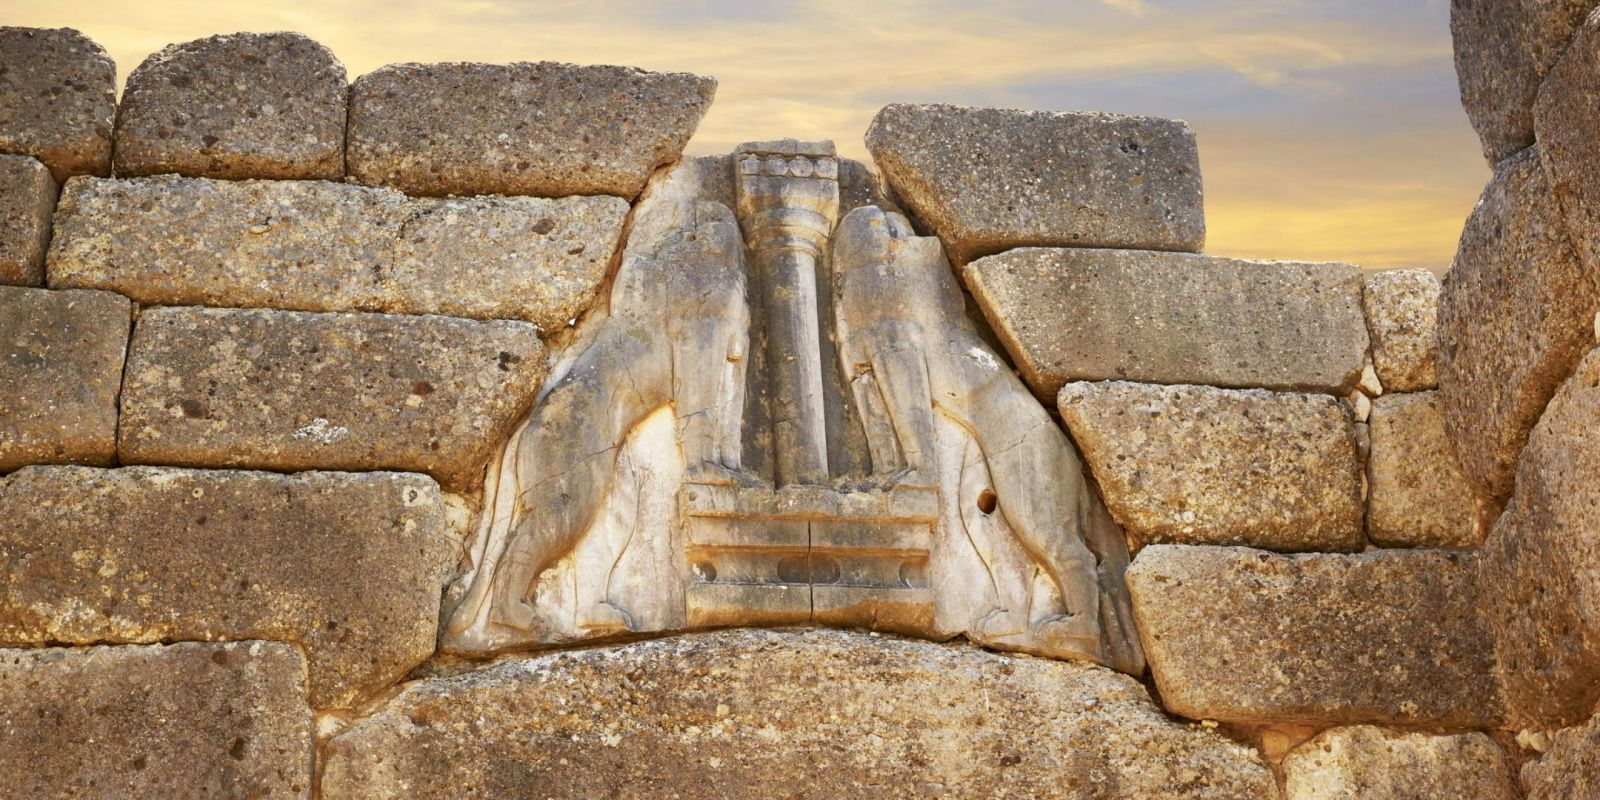 Mycenae, Greece - Monterrasol private tours to Mycenae, Greece. Travel agency offers custom private car tours to see Mycenae in Greece. Order custom private tour to Mycenae with departure date on request.